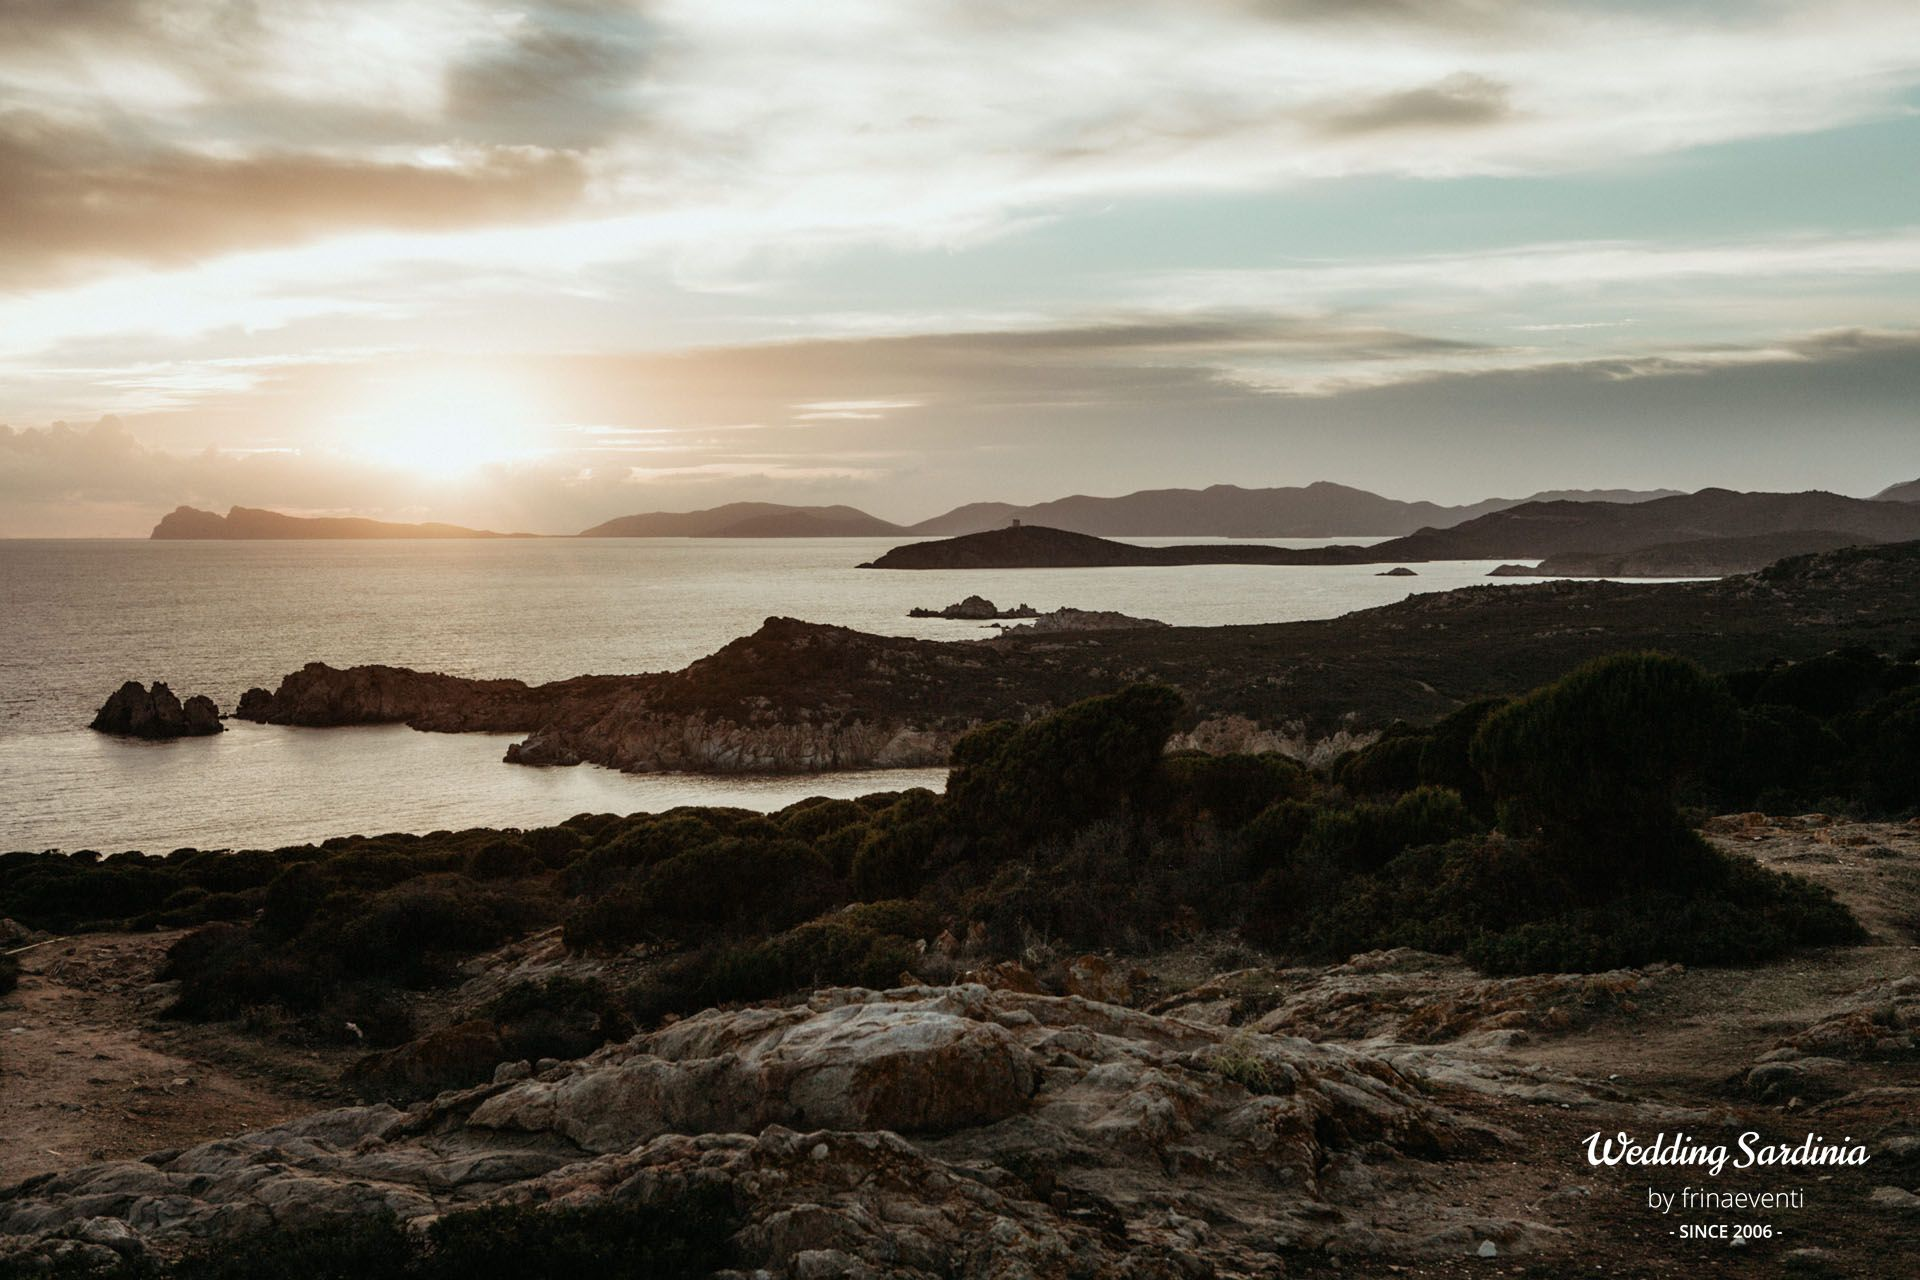 Sardinia is made of terrific sunsets like this, in the south of the Island.